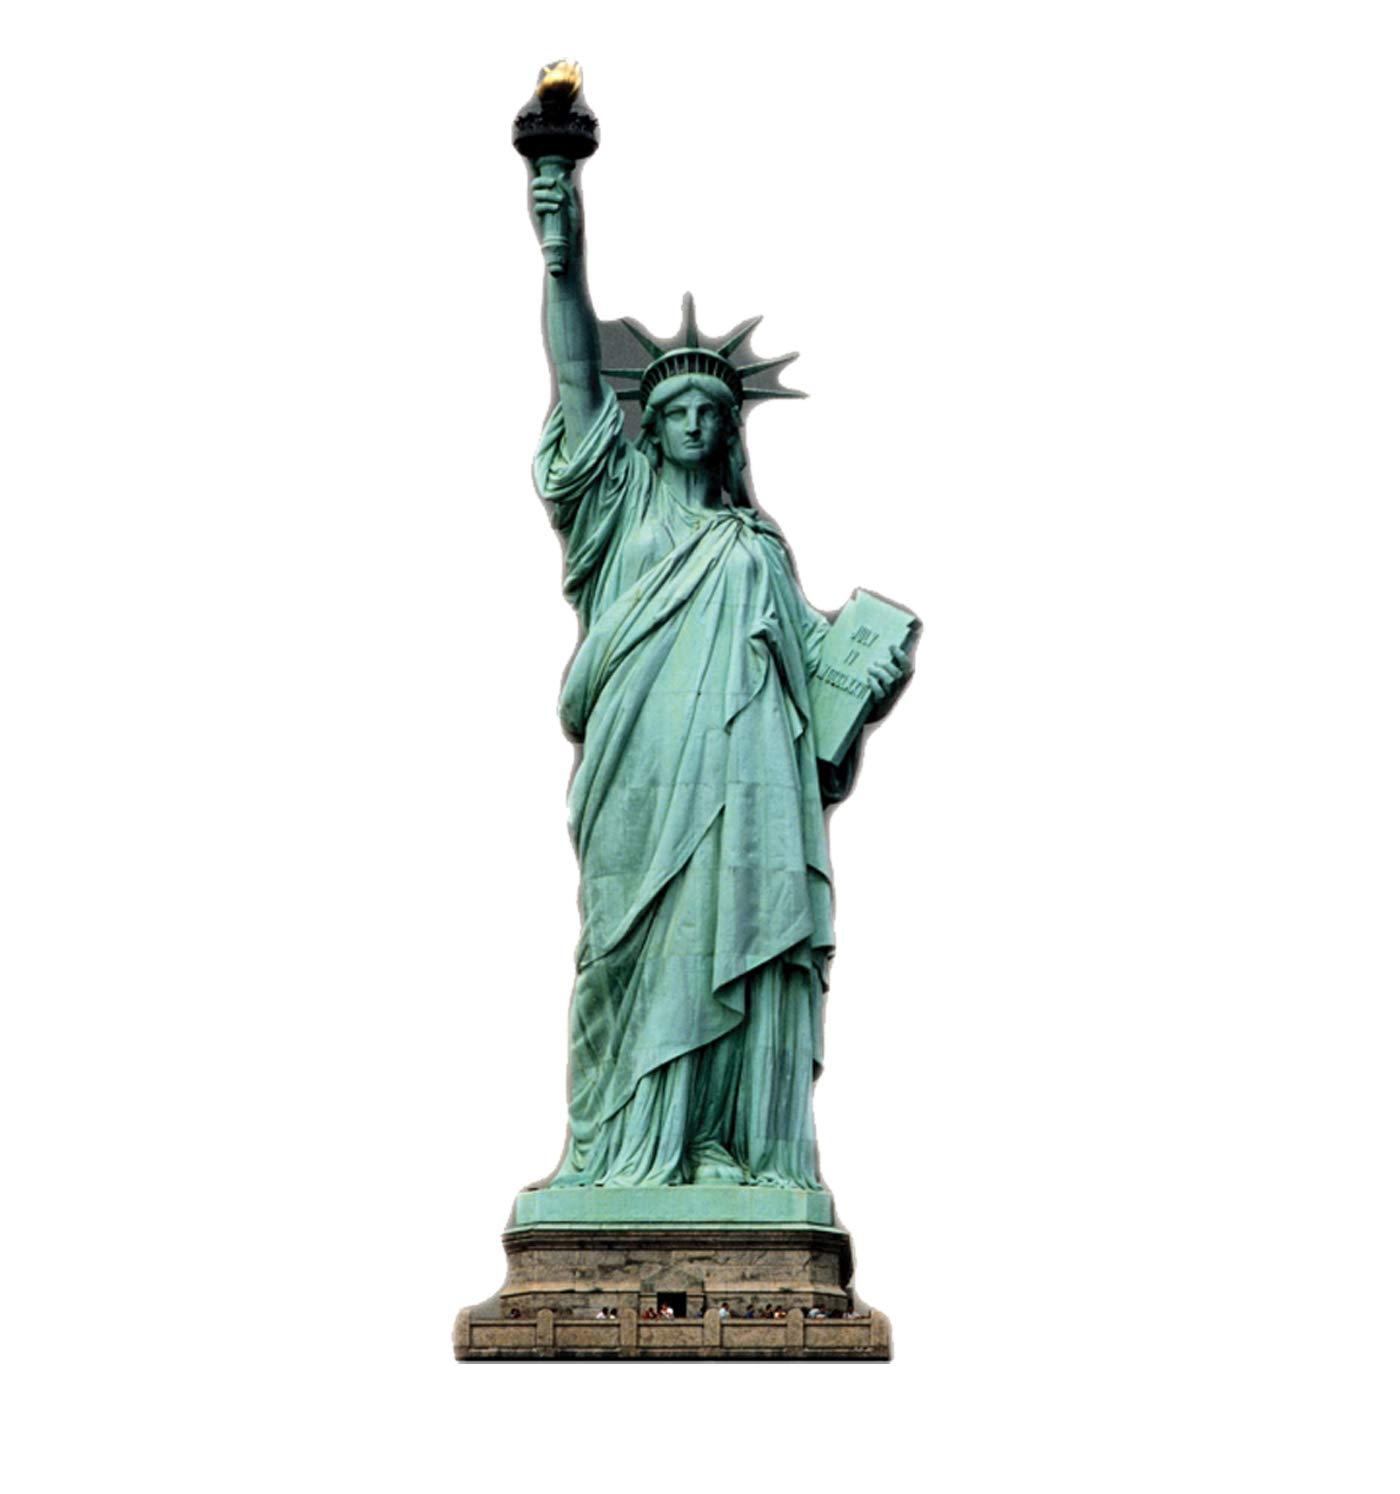 Advanced Graphics Statue of Liberty Life Size Cardboard Cutout Standup by Cardboard People